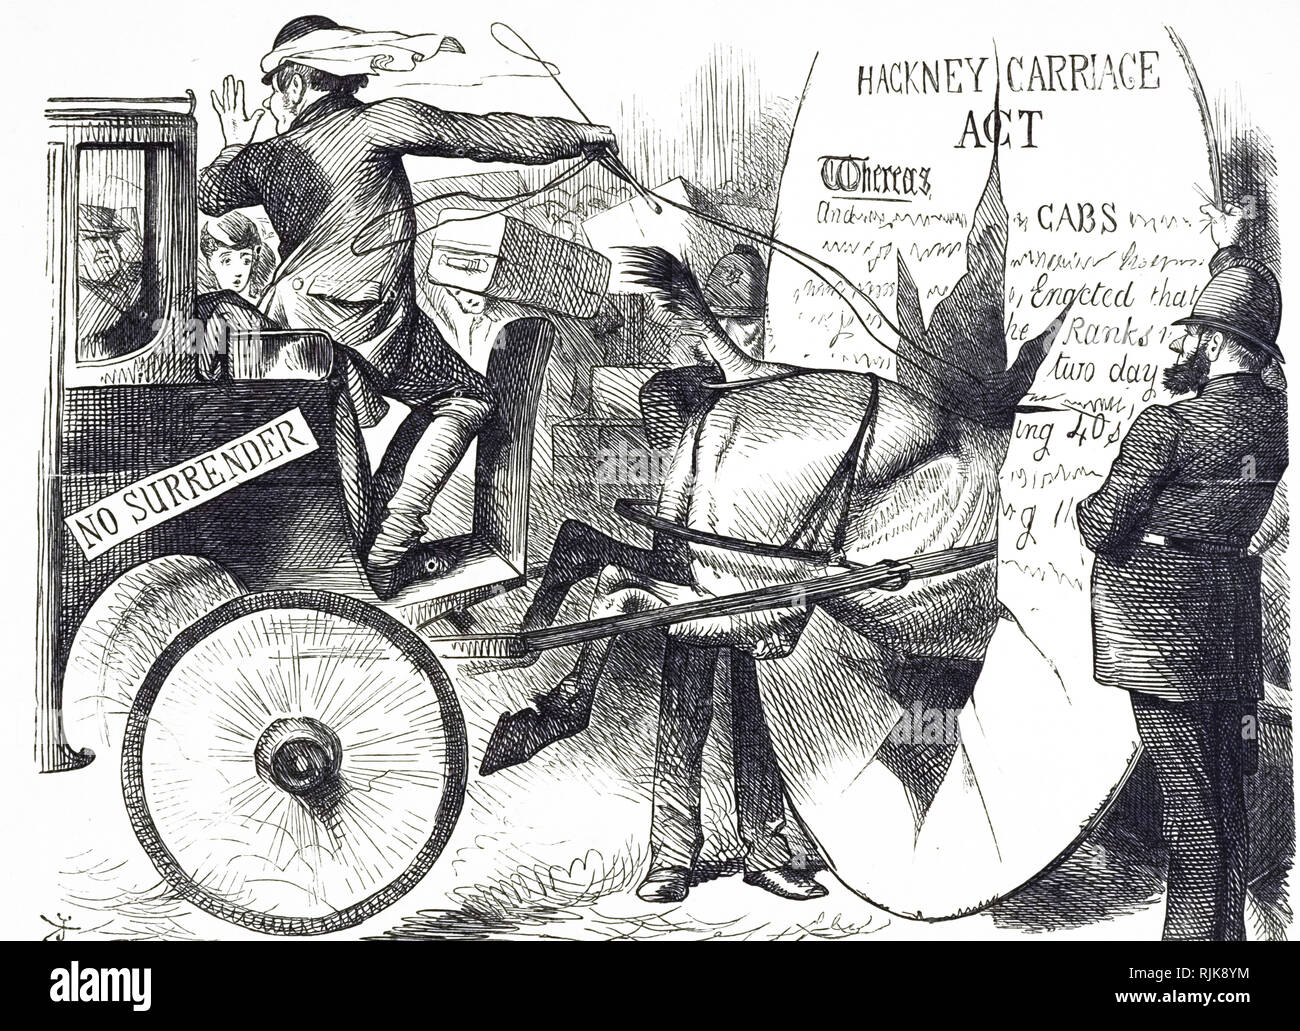 A cartoon commenting on the Hackney Carriage Act 1843. Dated 19th century - Stock Image